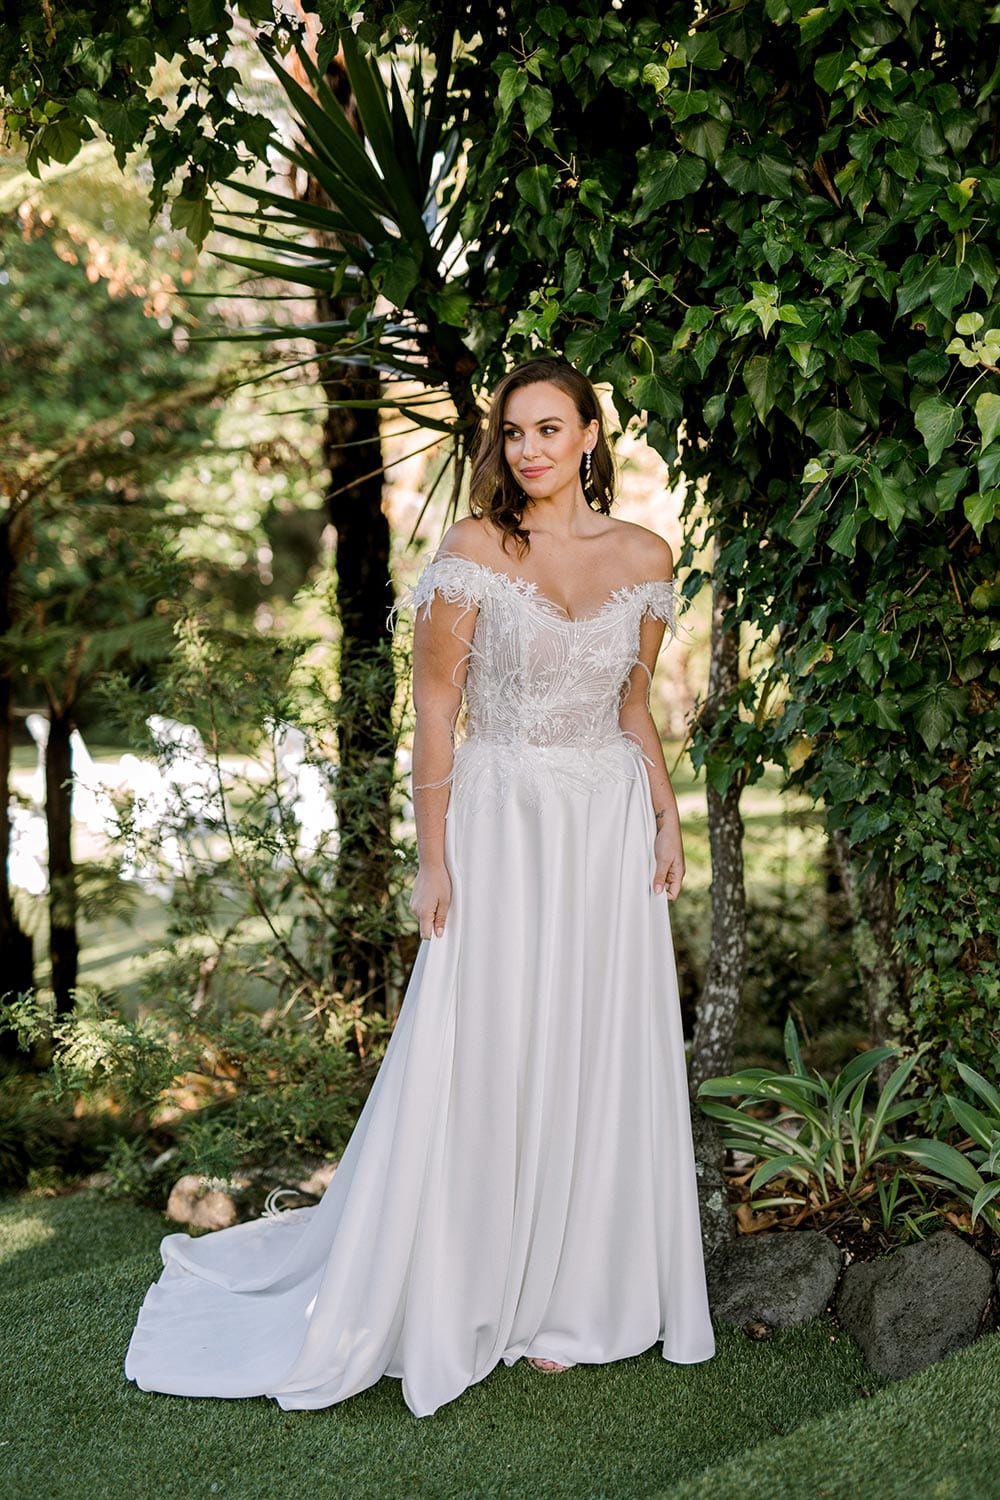 Genevive Wedding Dress from Vinka Design. The soft off-the-shoulder sleeves & semi-sheer structured bodice with hand-appliqued lace and a soft satin skirt make this a romantic & dreamy wedding dress. Full length portrait with train to side, photographed at Tui Hills.